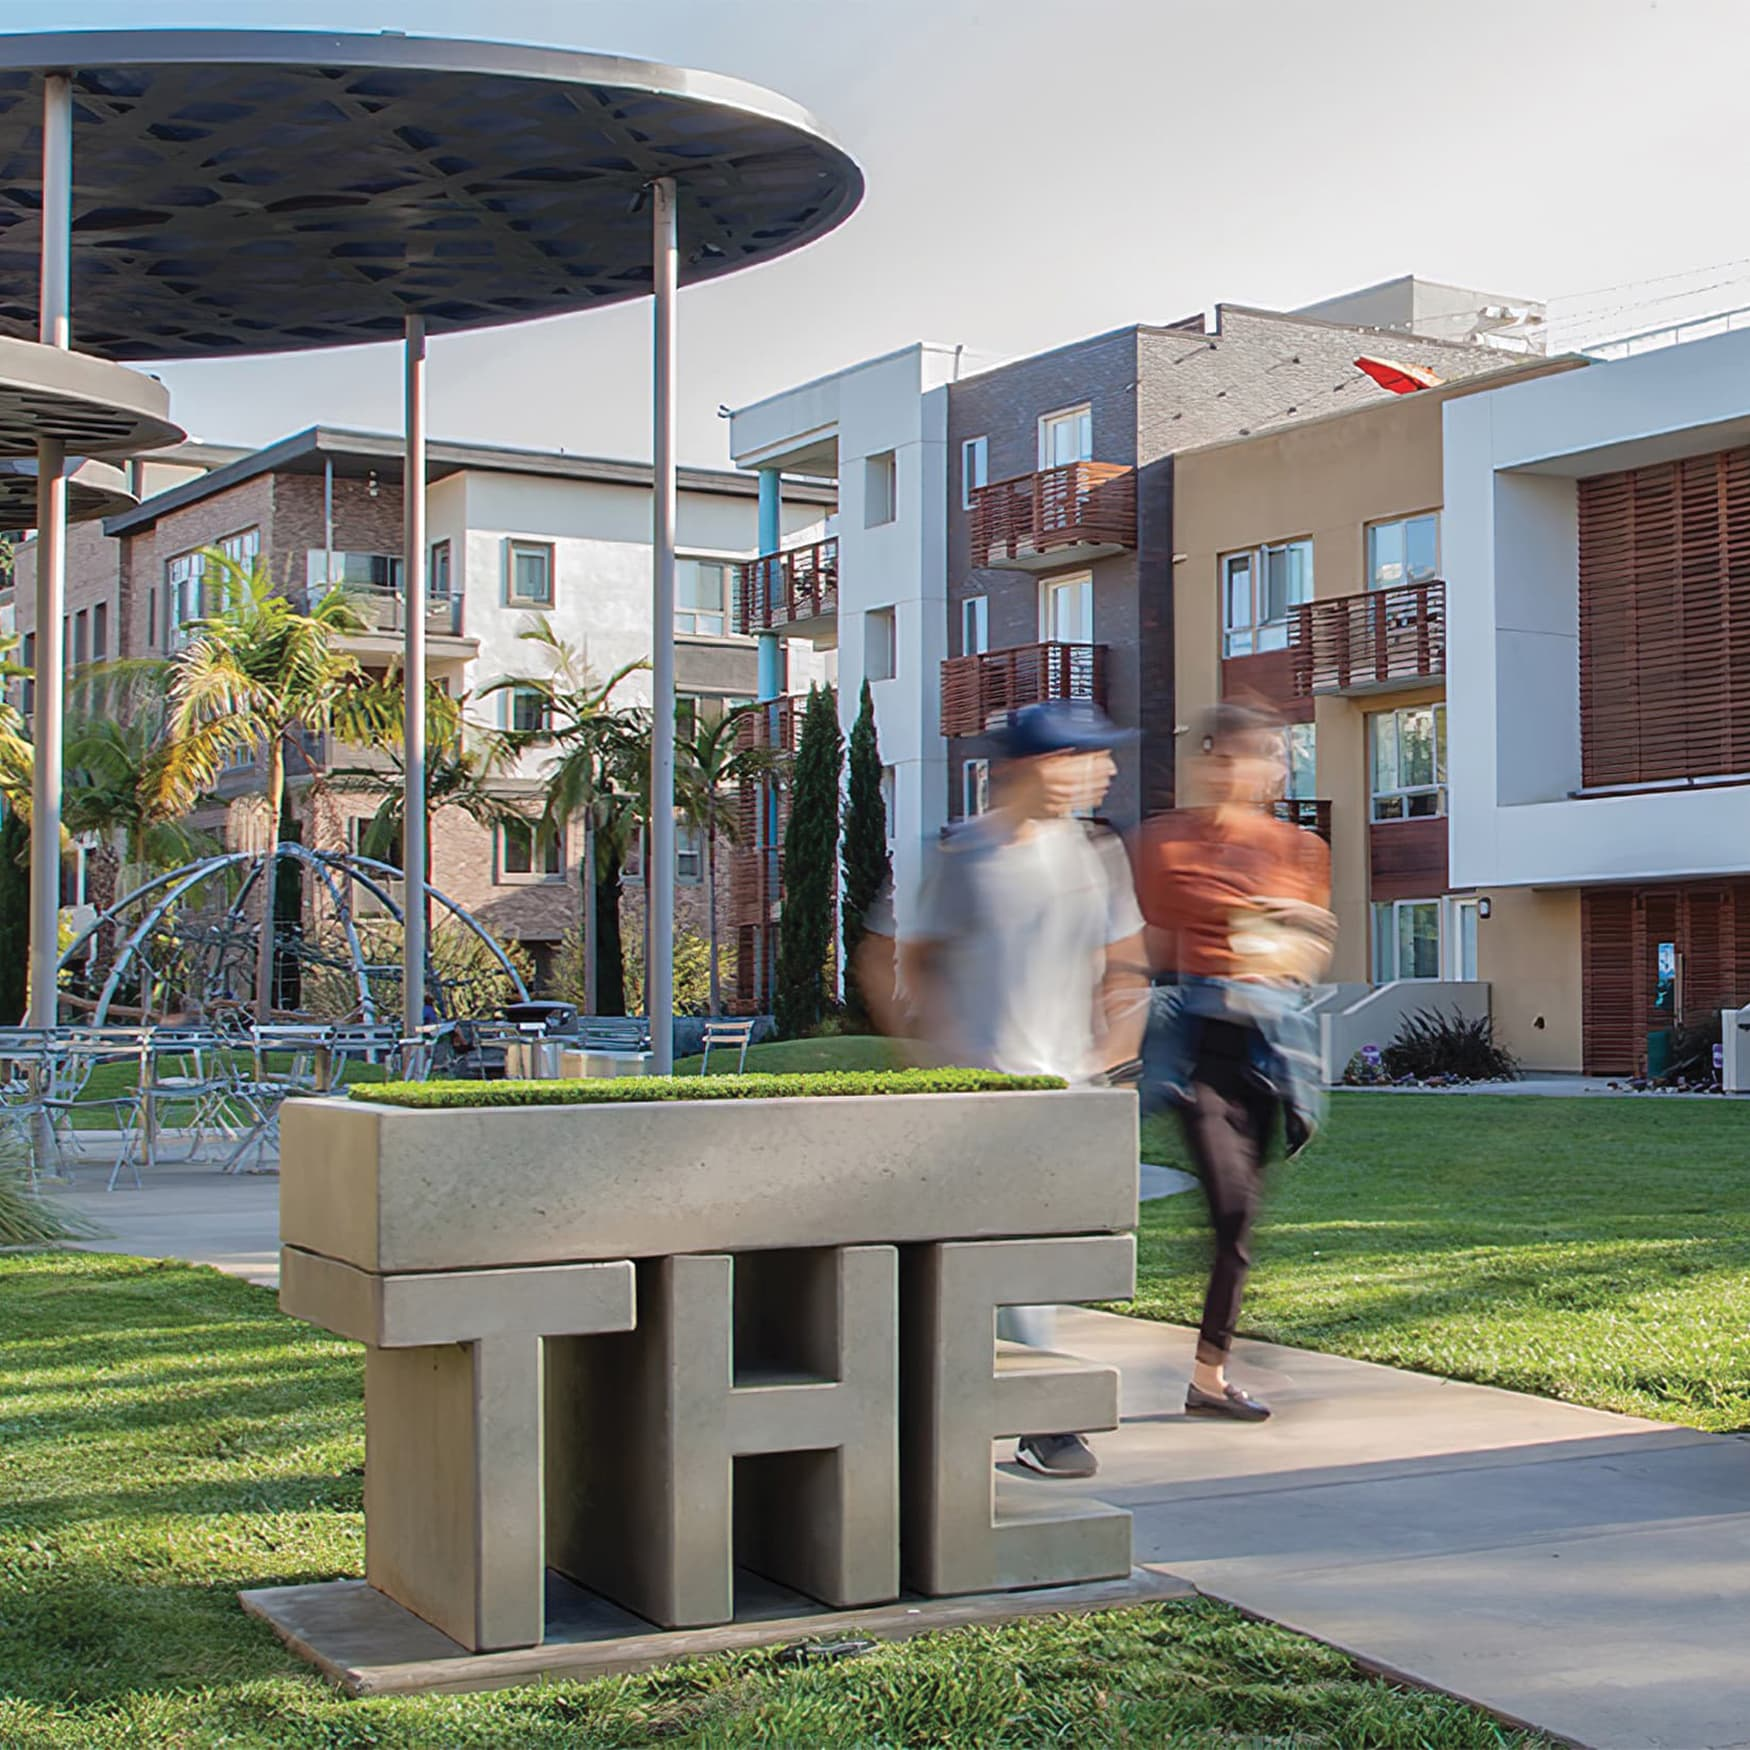 Placemaking identity for The Lawn located in Playa Vista Parks